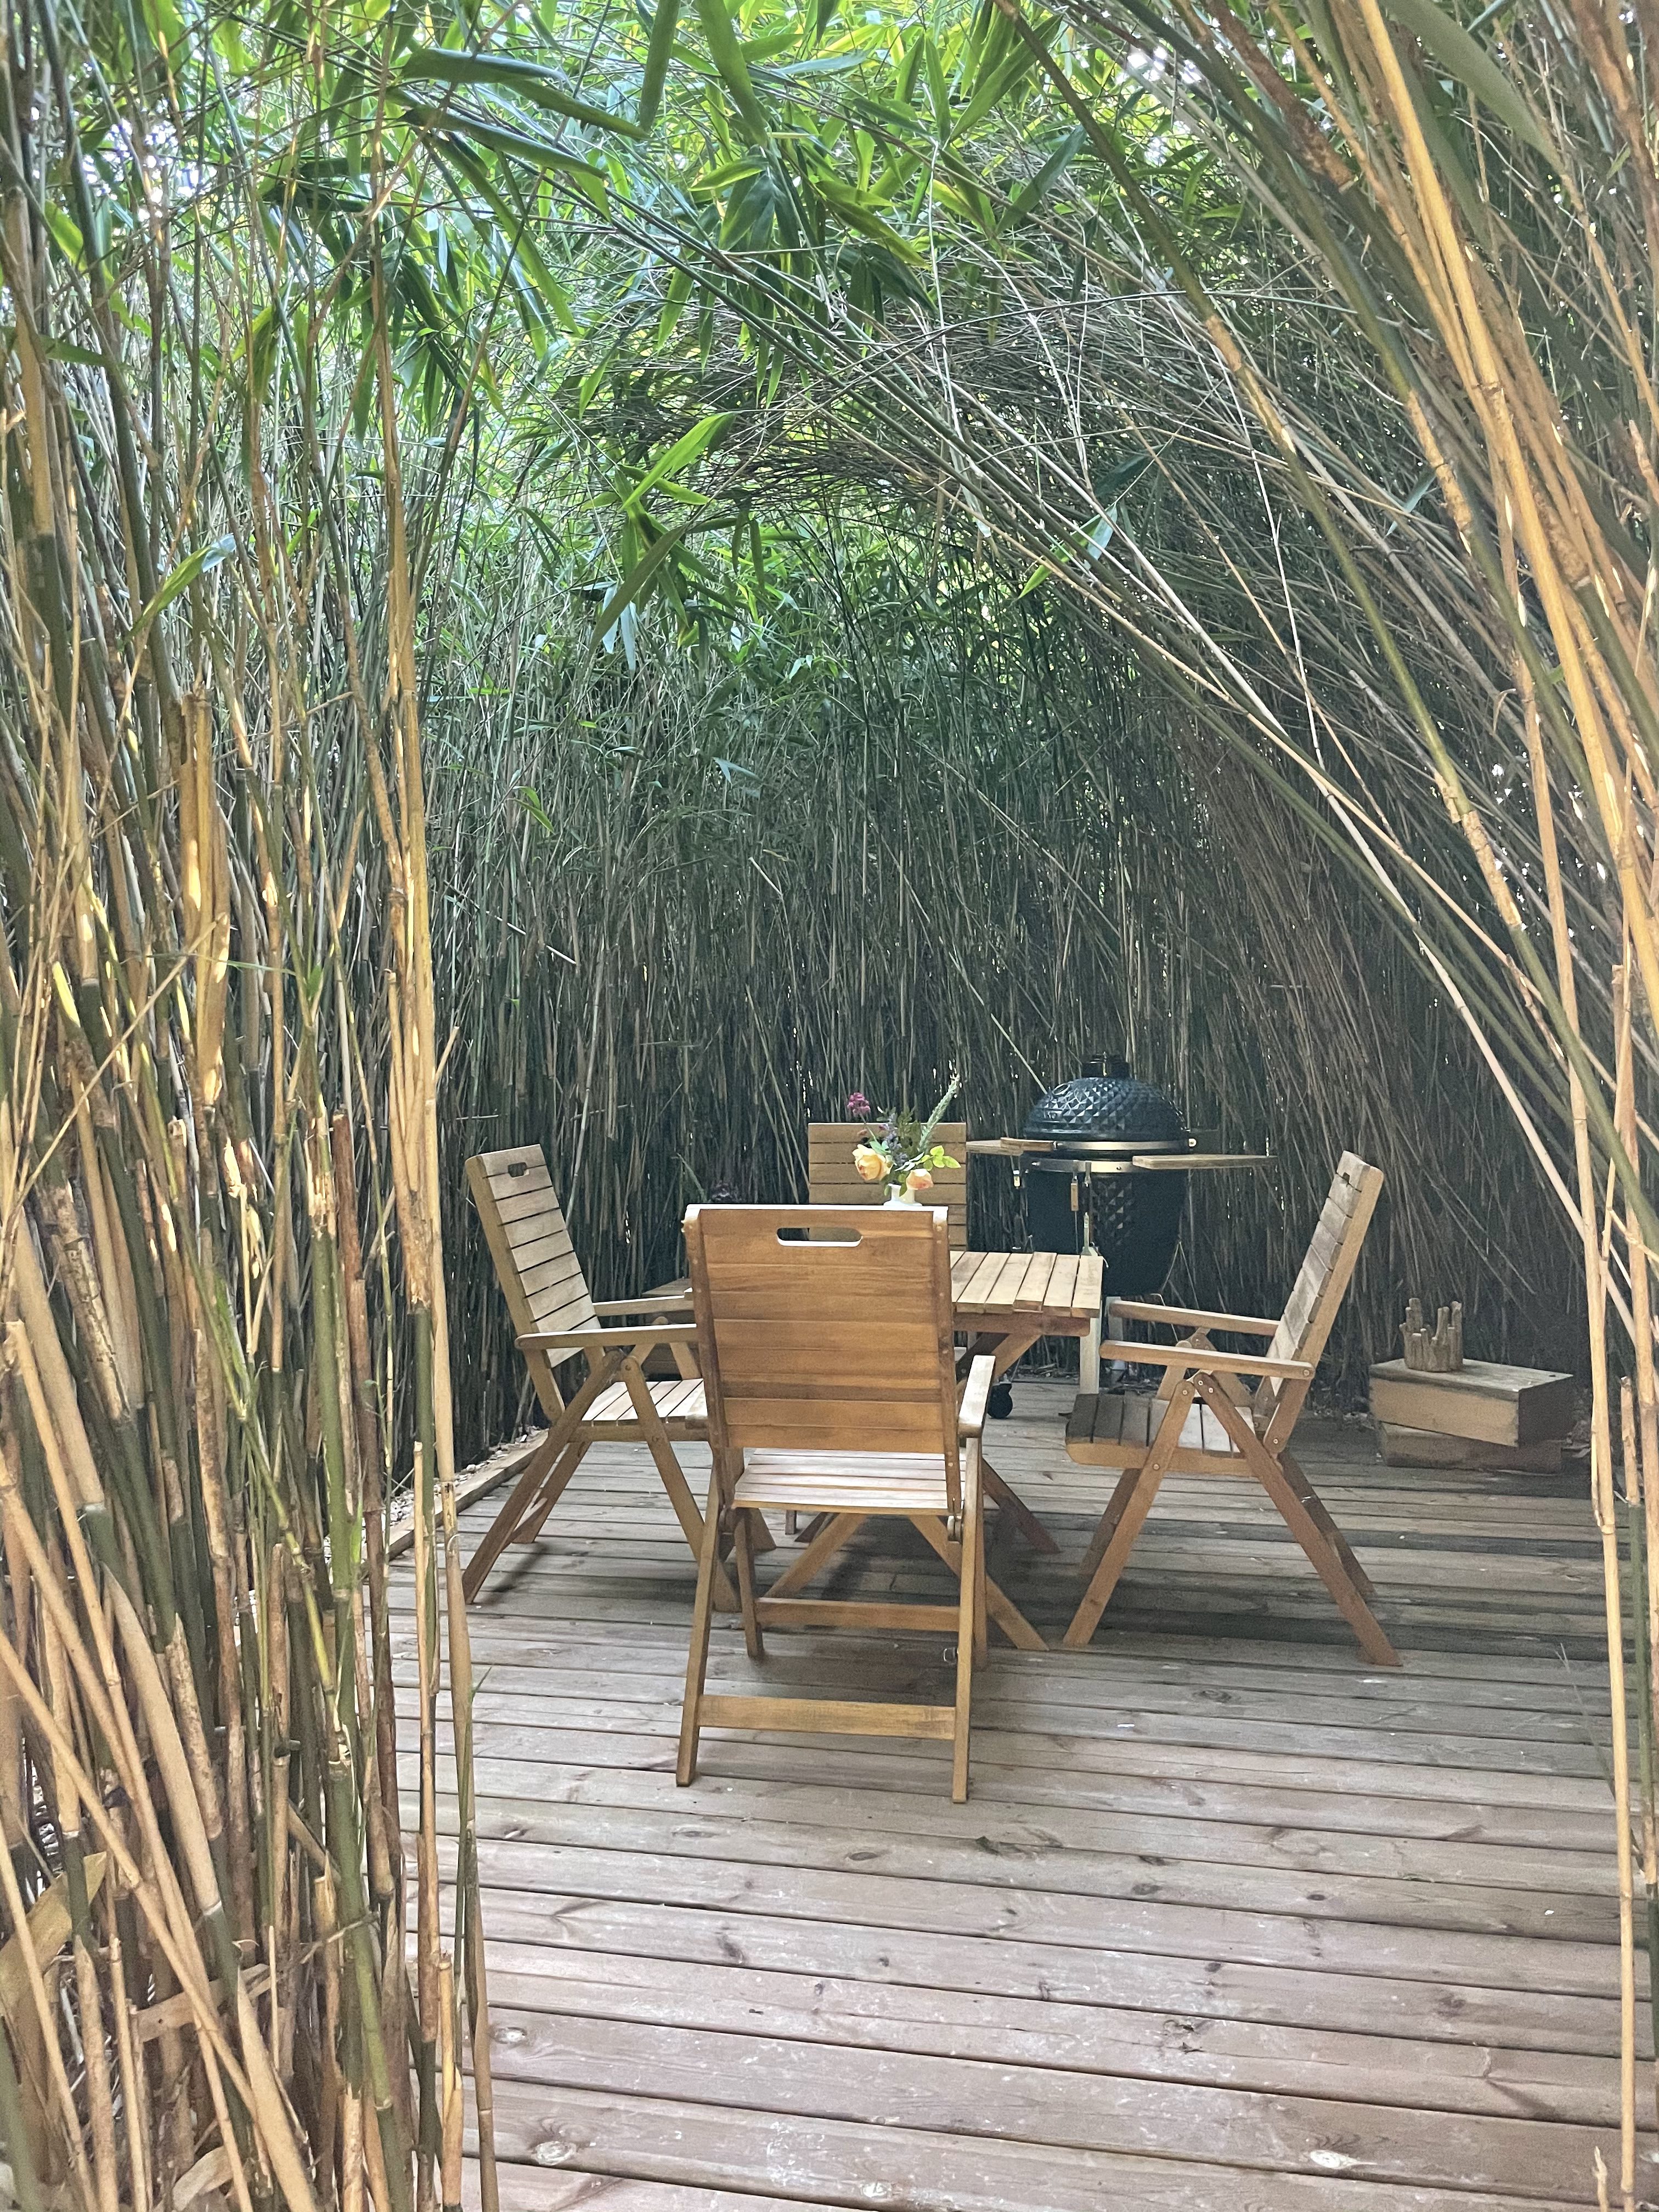 Bamboo Chill // 2h30